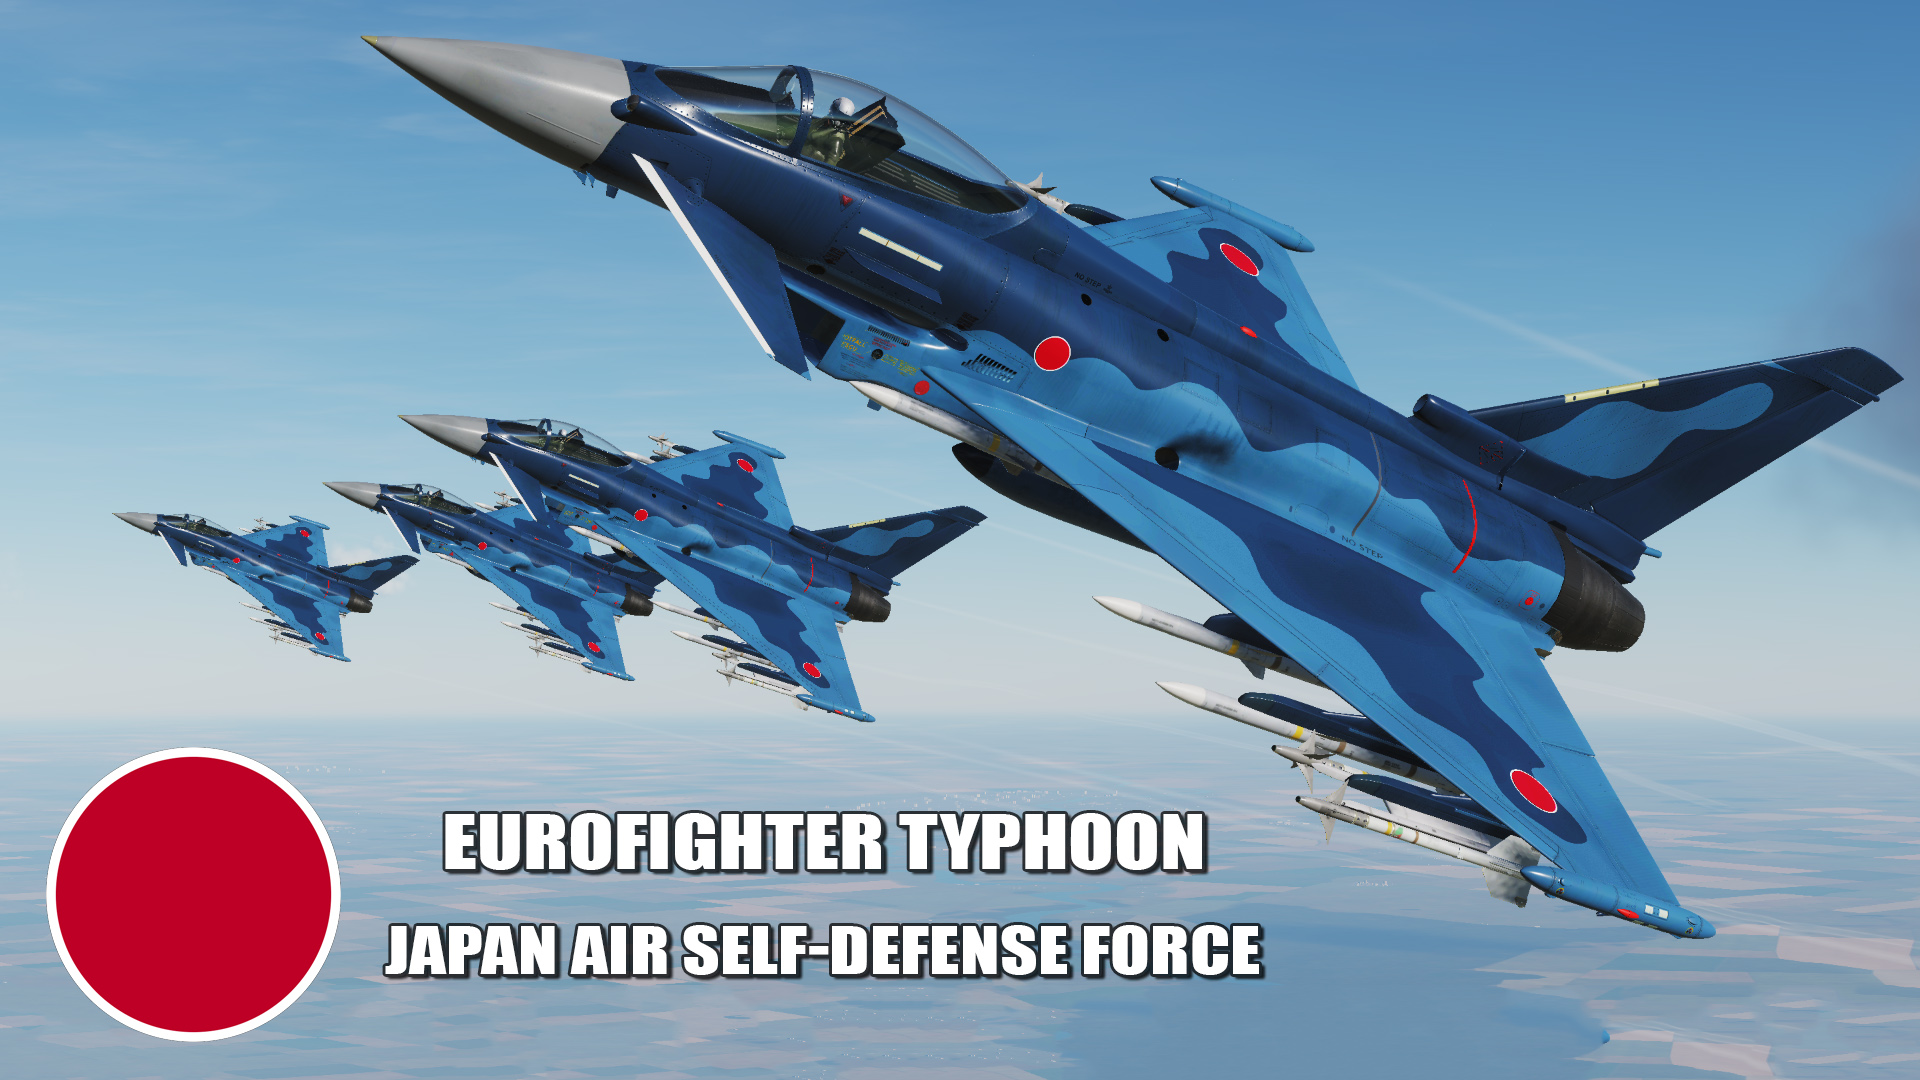 Japan Air Self-Defense Force Eurofighter Typhoon